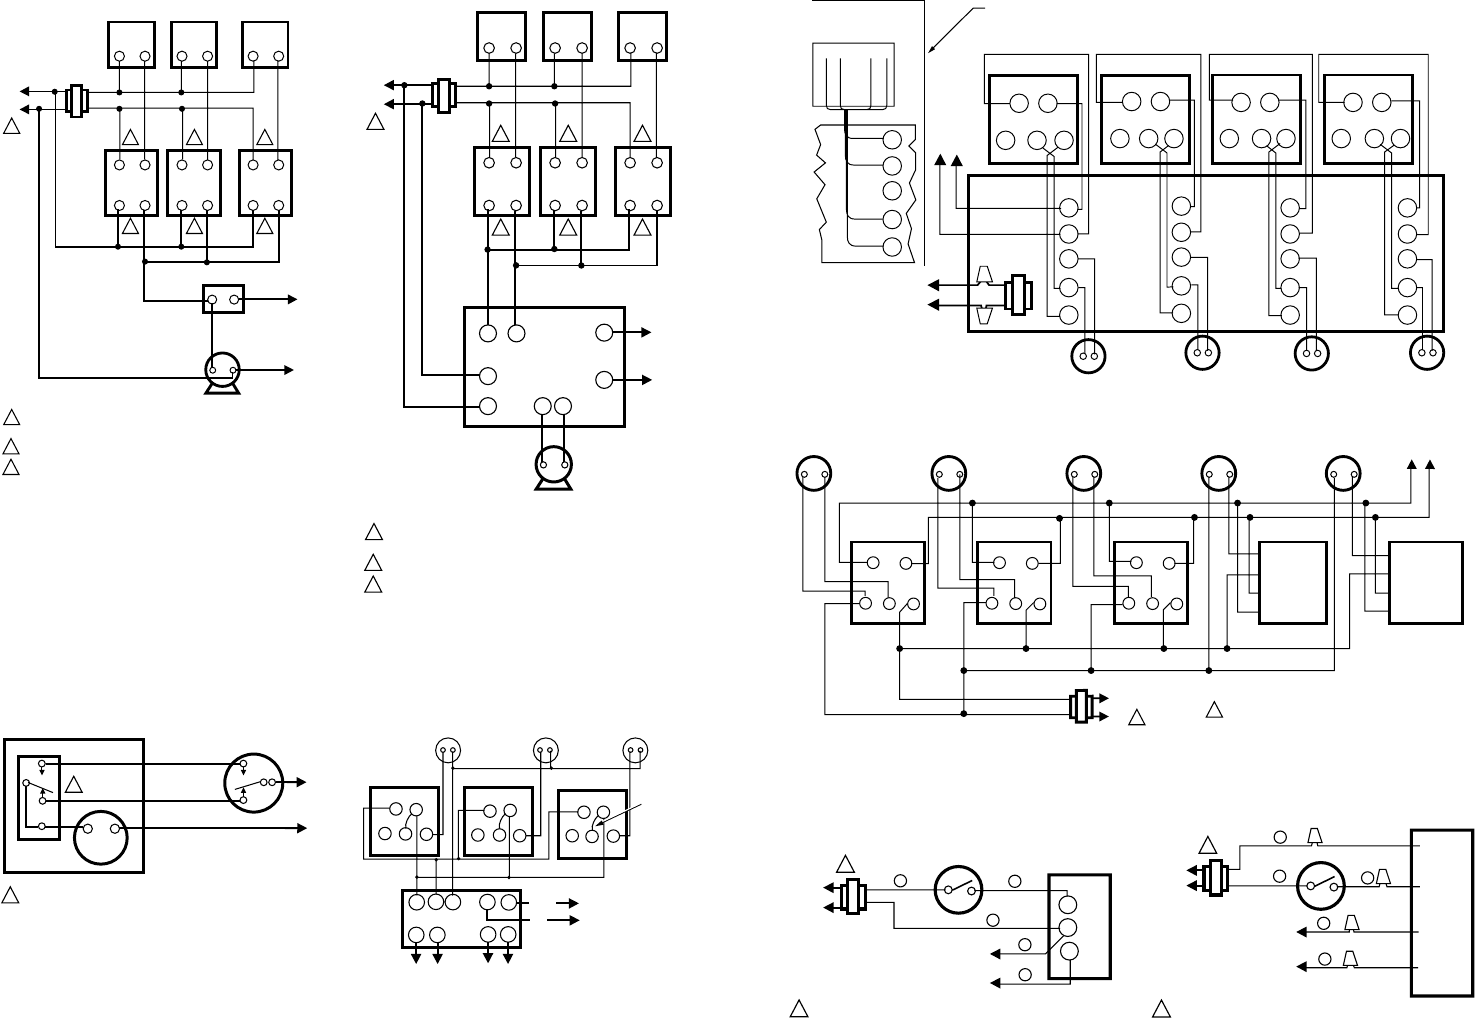 Honeywell V8043e Wiring Diagram Fuse Box Zone Valve 40004850 001 Smart Diagrams U2022 Rh Emgsolutions Co Boiler Valves Install